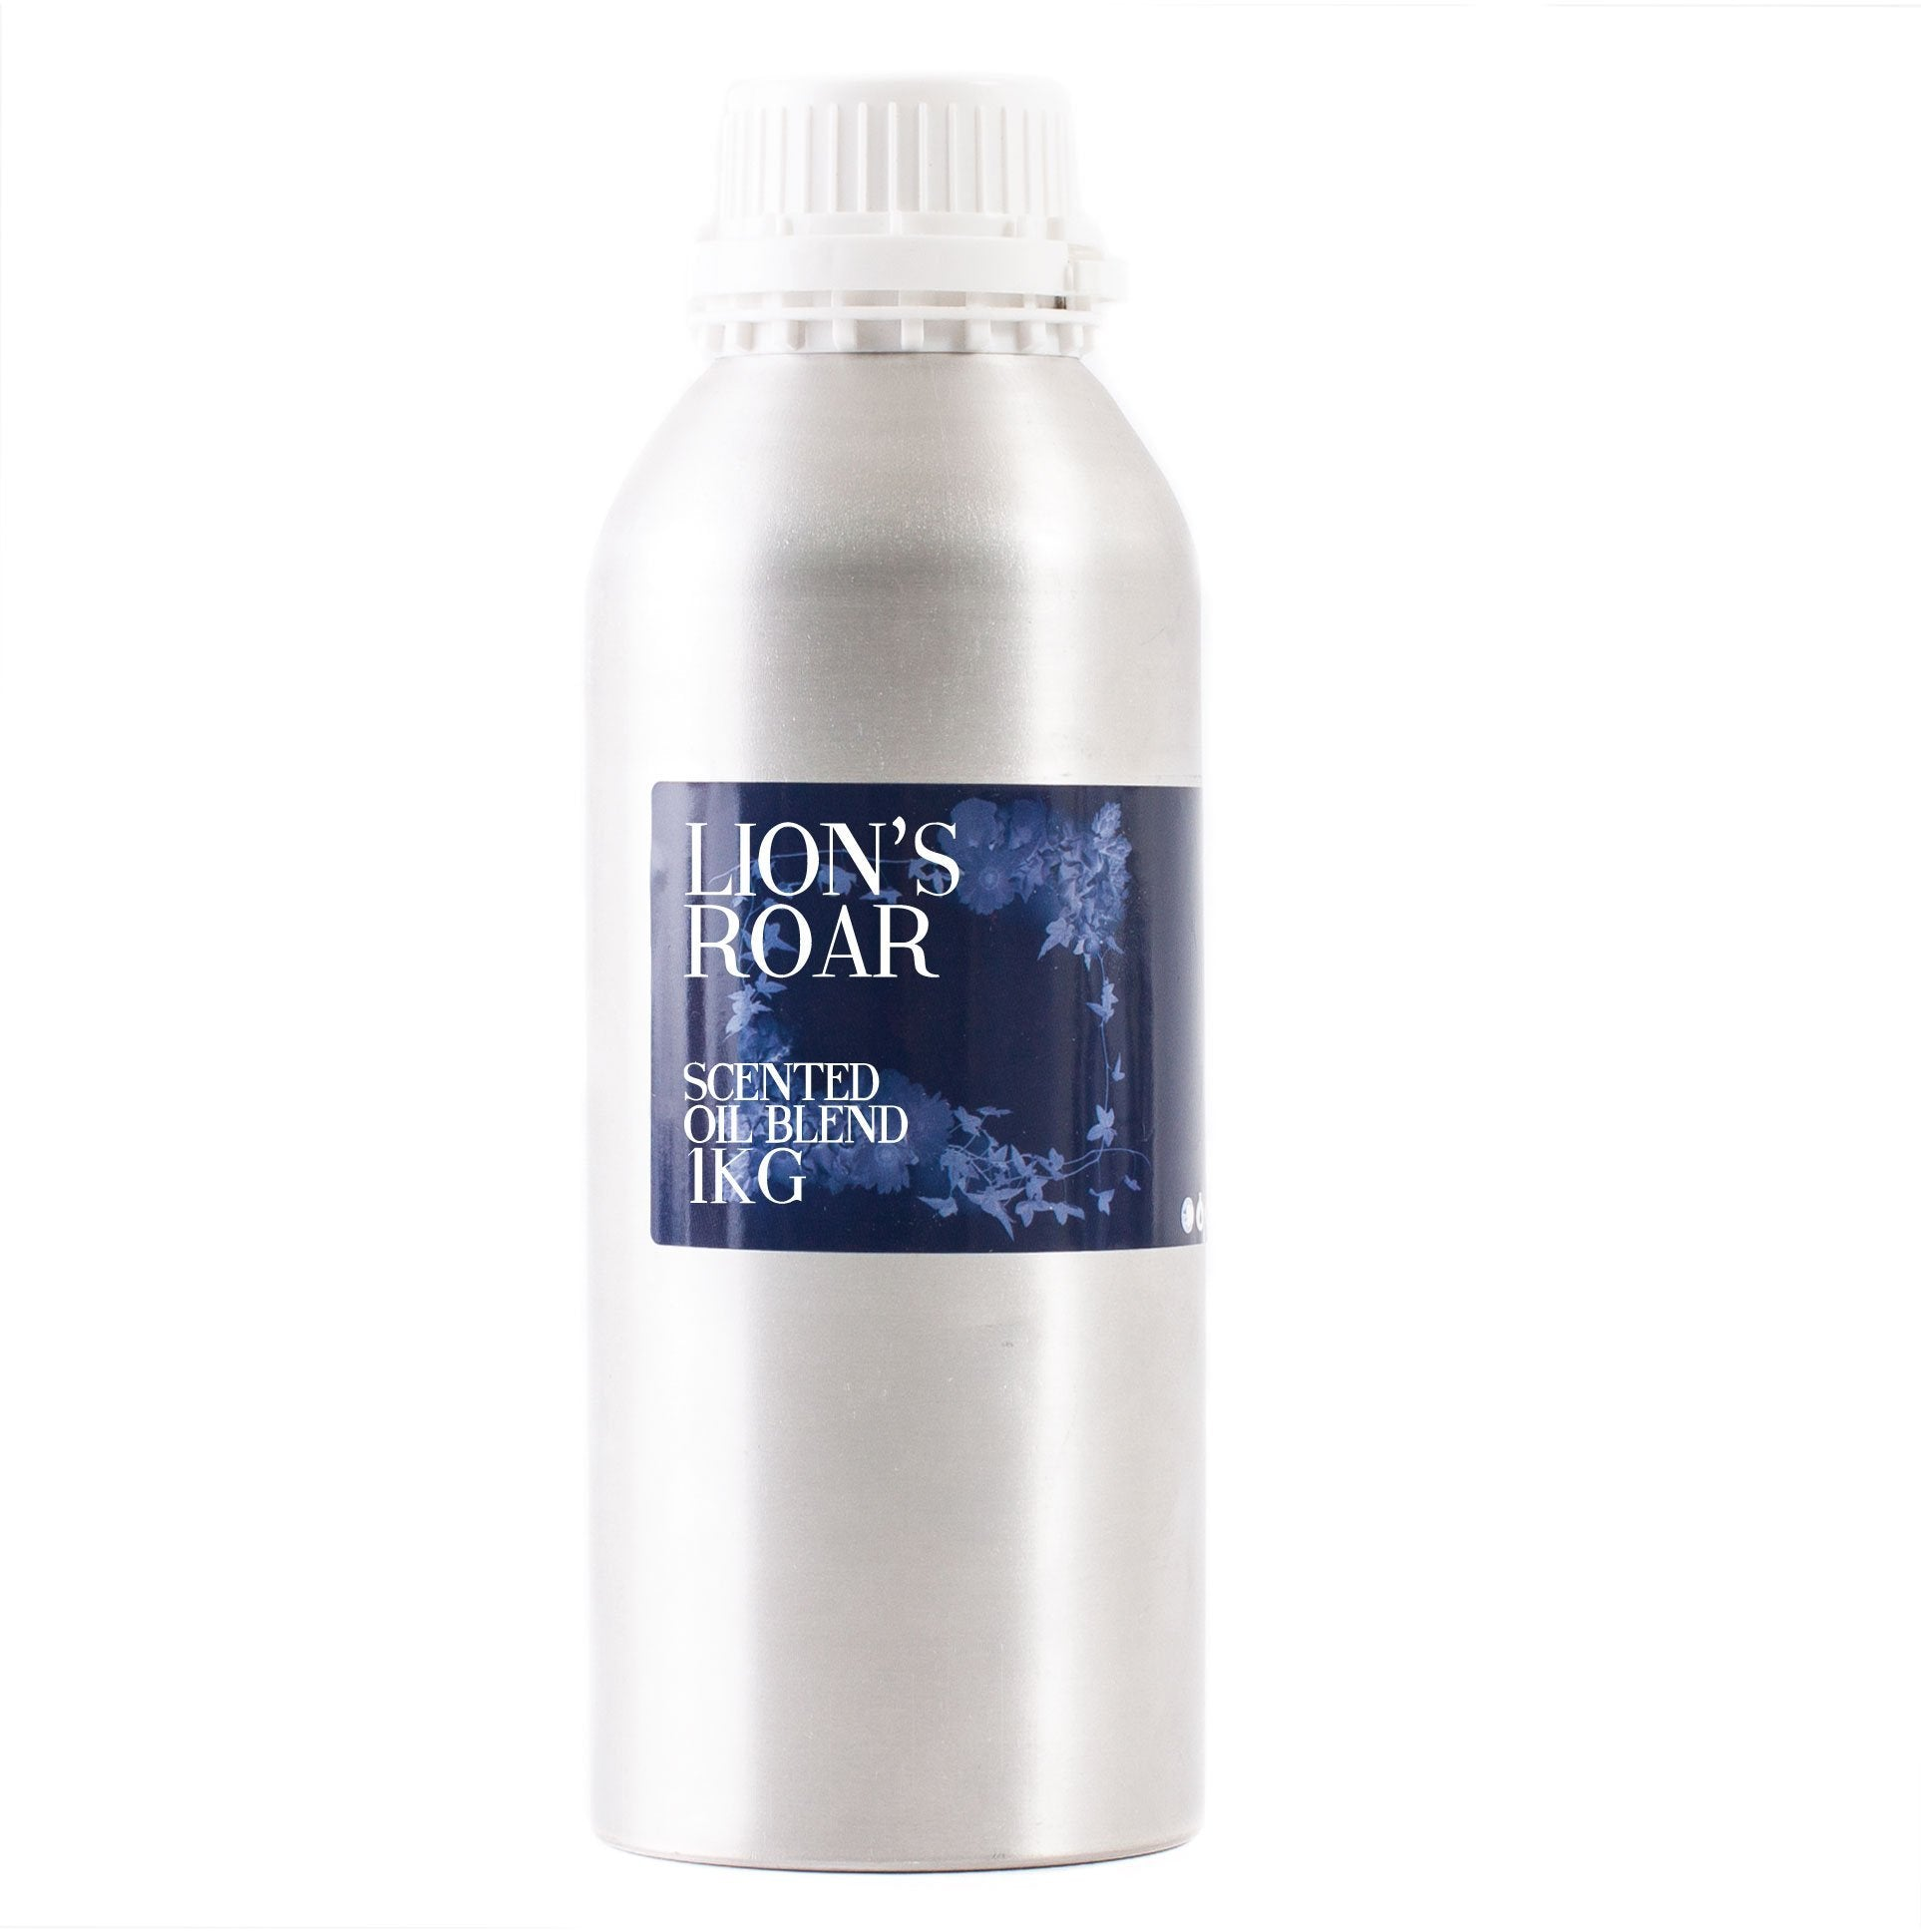 Lion's Roar - Scented Oil Blend